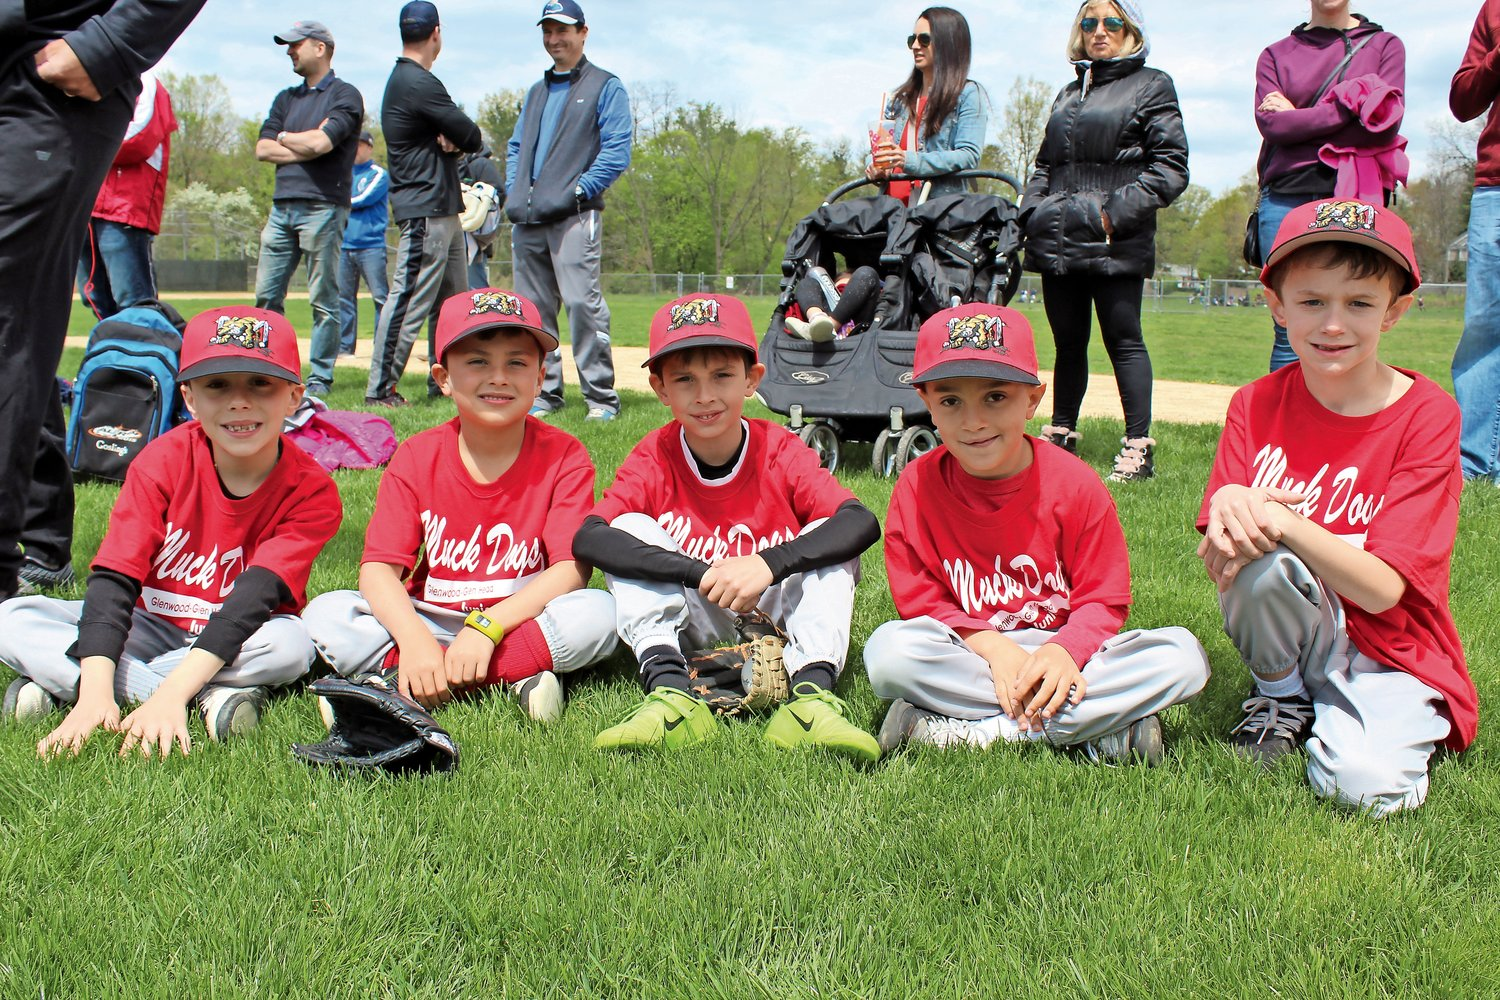 Muck Duck teammates, from left, Theo Roumas, Cole Betinetti, Logan Taveira, Benny Sosa and Mikey Wagner in the infield after the parade.